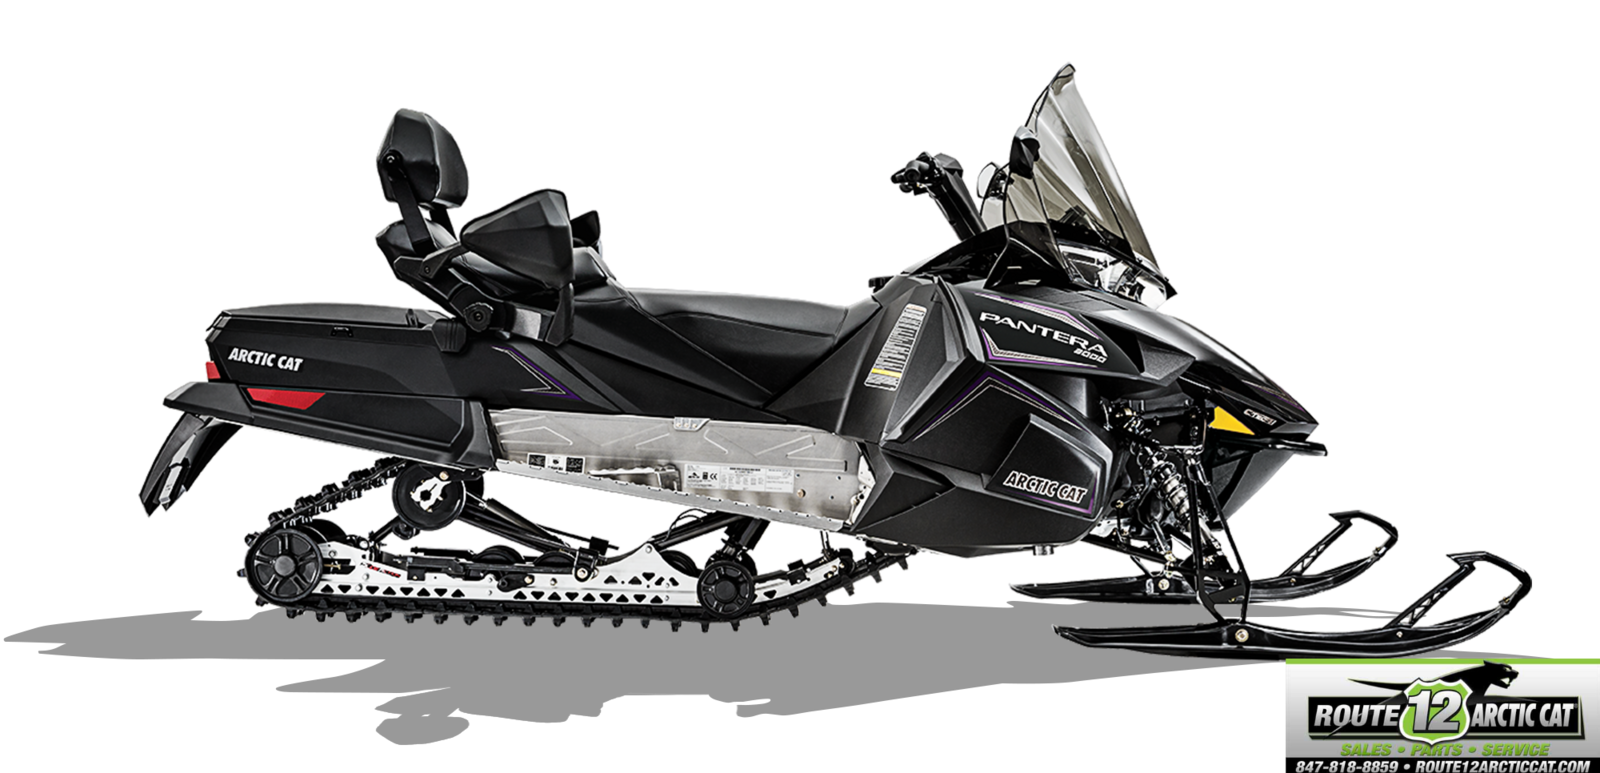 2017 Arctic Cat PANTERA 3000 for sale in Arlington Heights IL